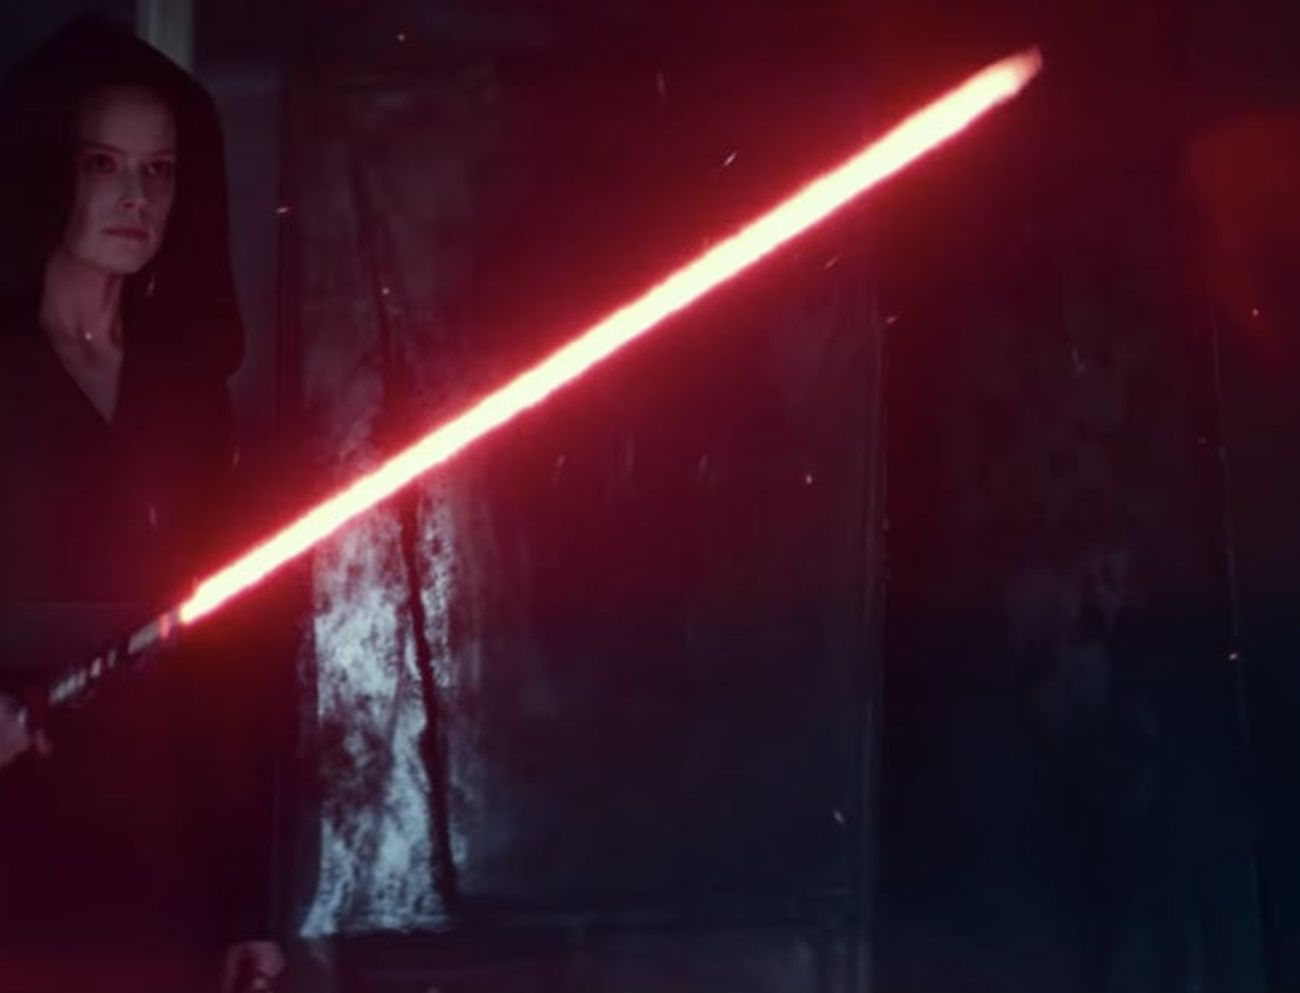 Star Wars IX : L'Ascension de Skywalker - Une bande-annonce, des interrogations et du SPOIL